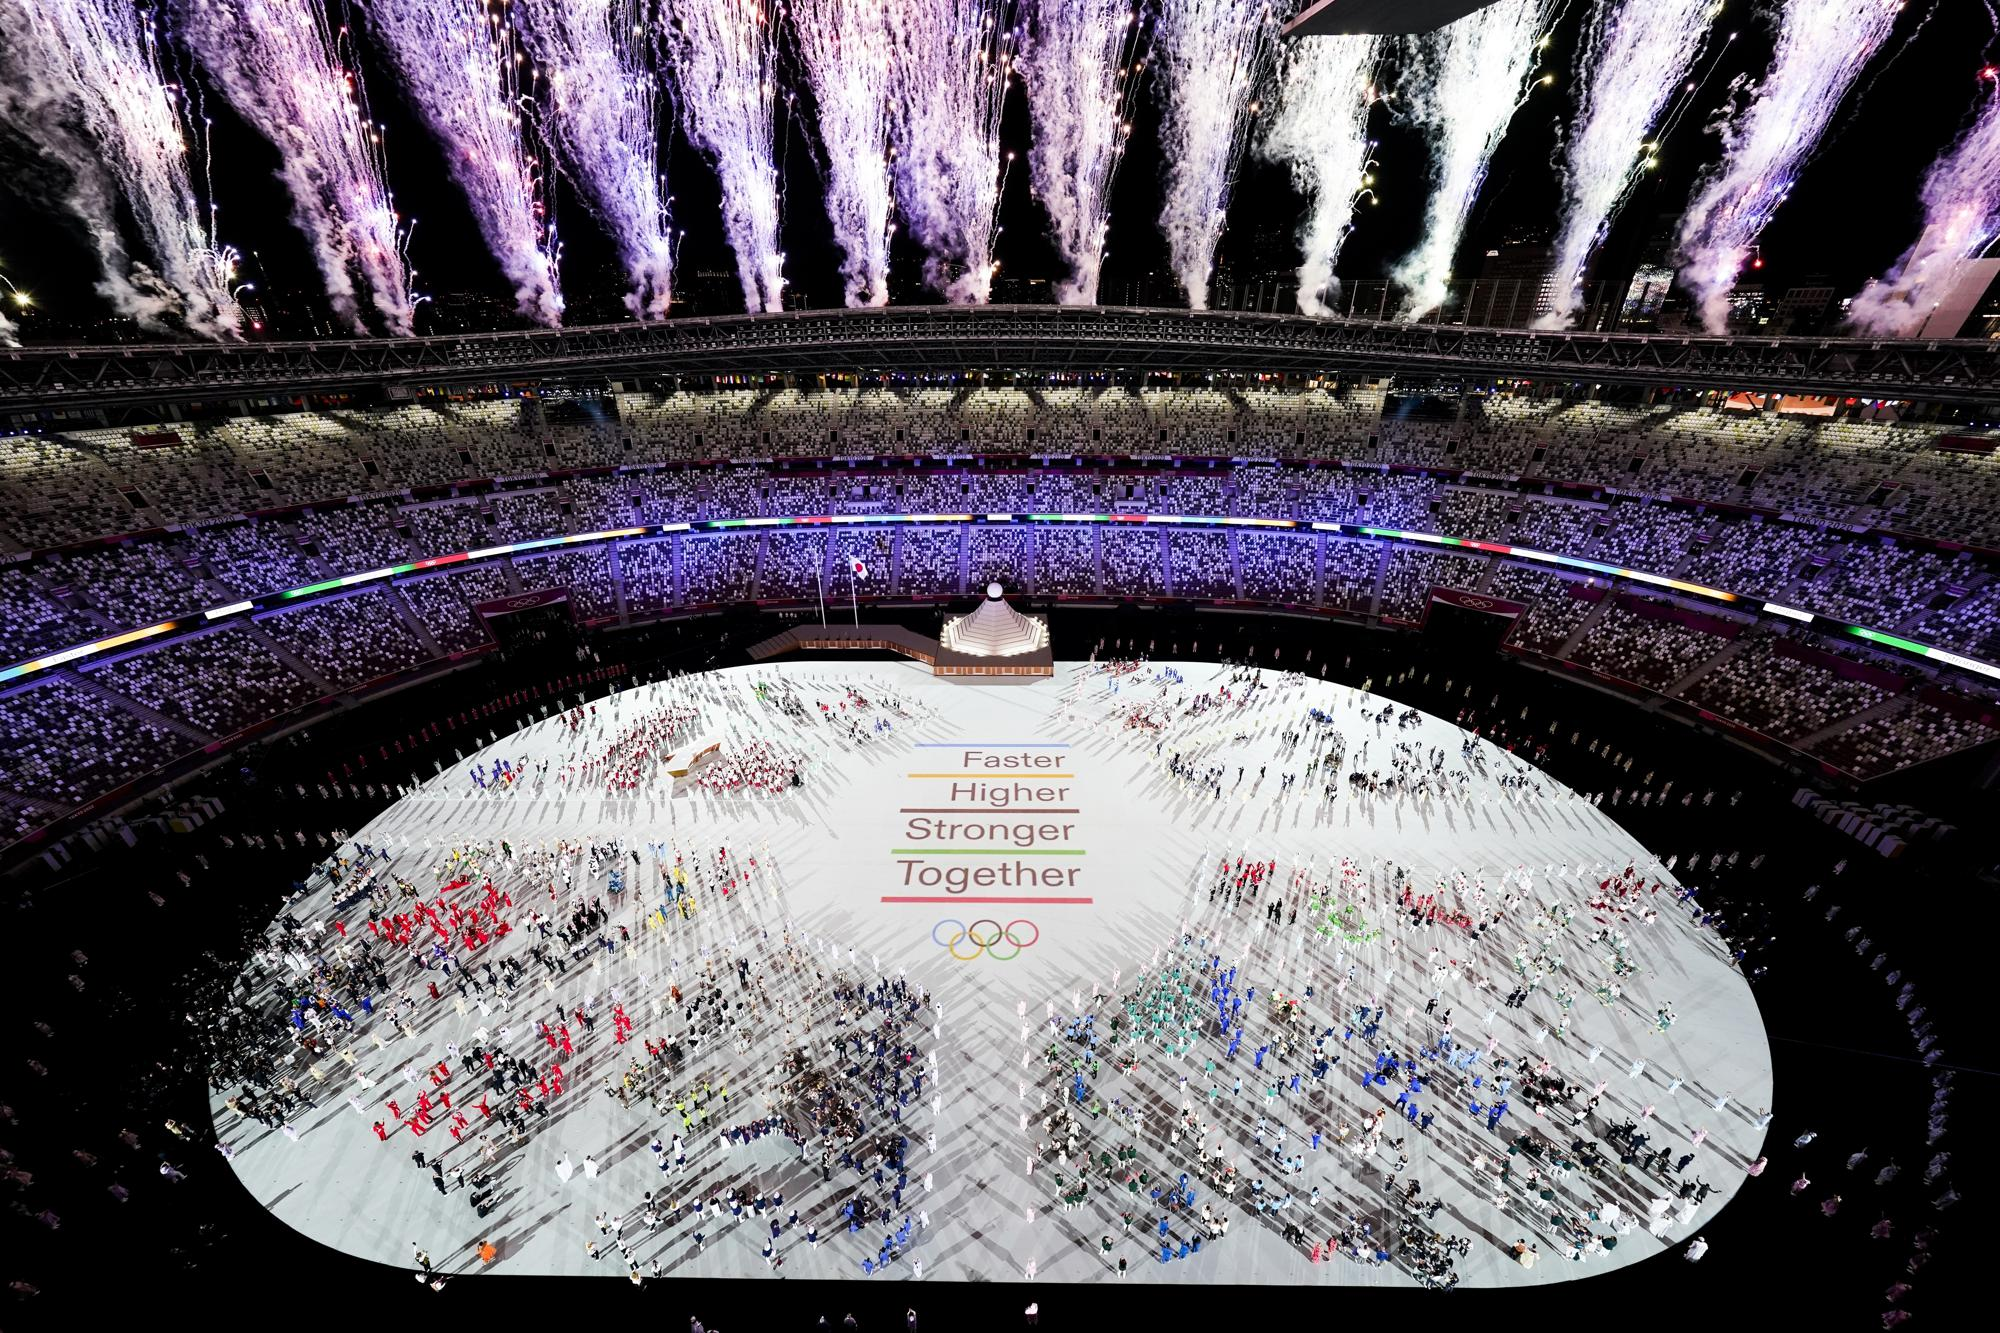 Athletes are seen with fireworks during the opening ceremony at the Olympic Stadium at the 2020 Summer Olympics, Friday, July 23, 2021, in Tokyo. (AP Photo/Morry Gash)